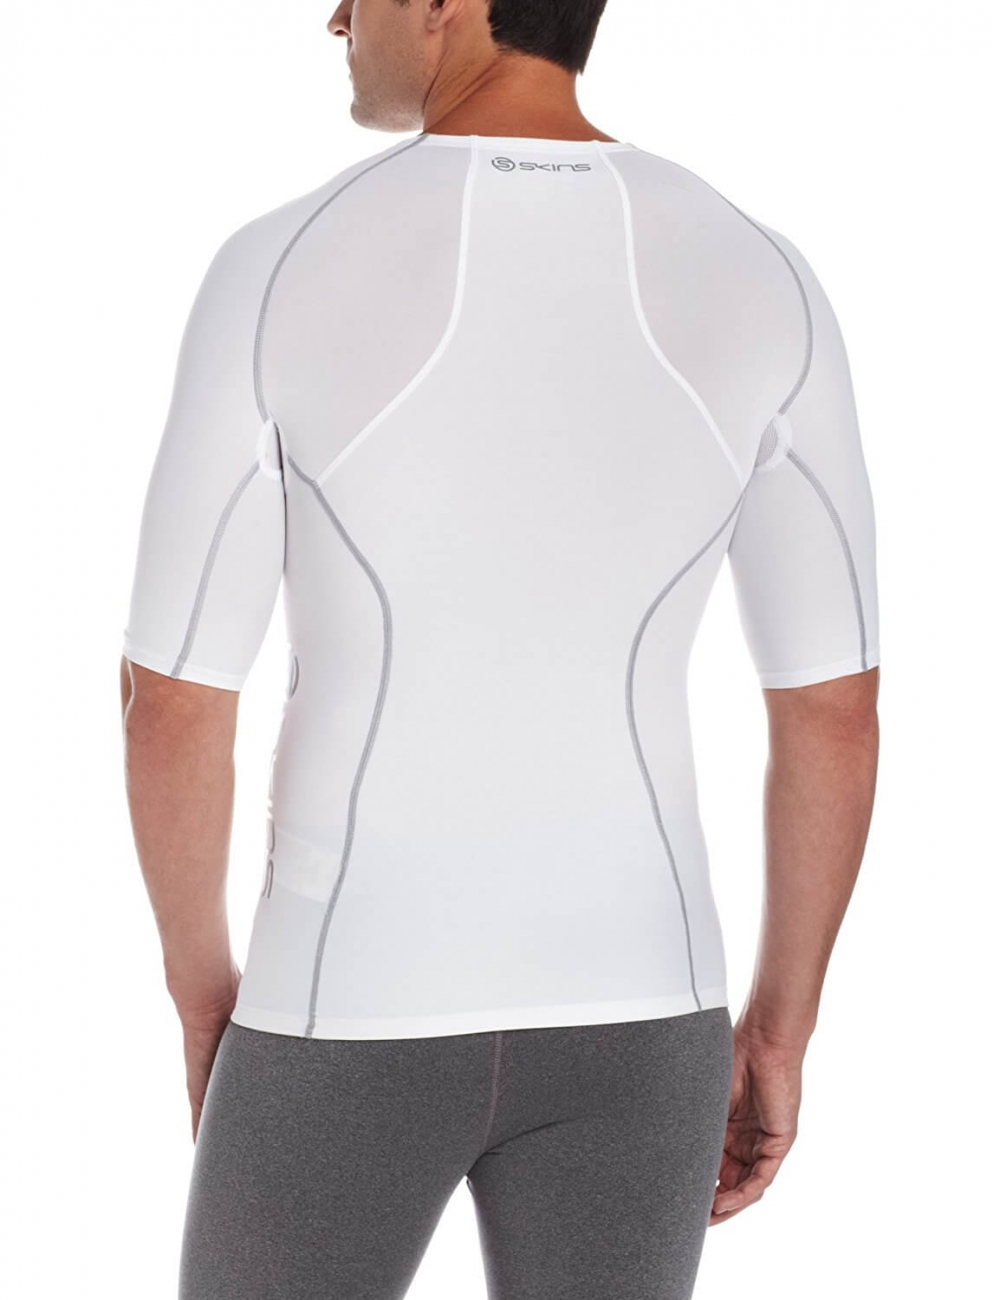 Футболка SKINS A200 compression shortsleeve shirt (размер M) - 2